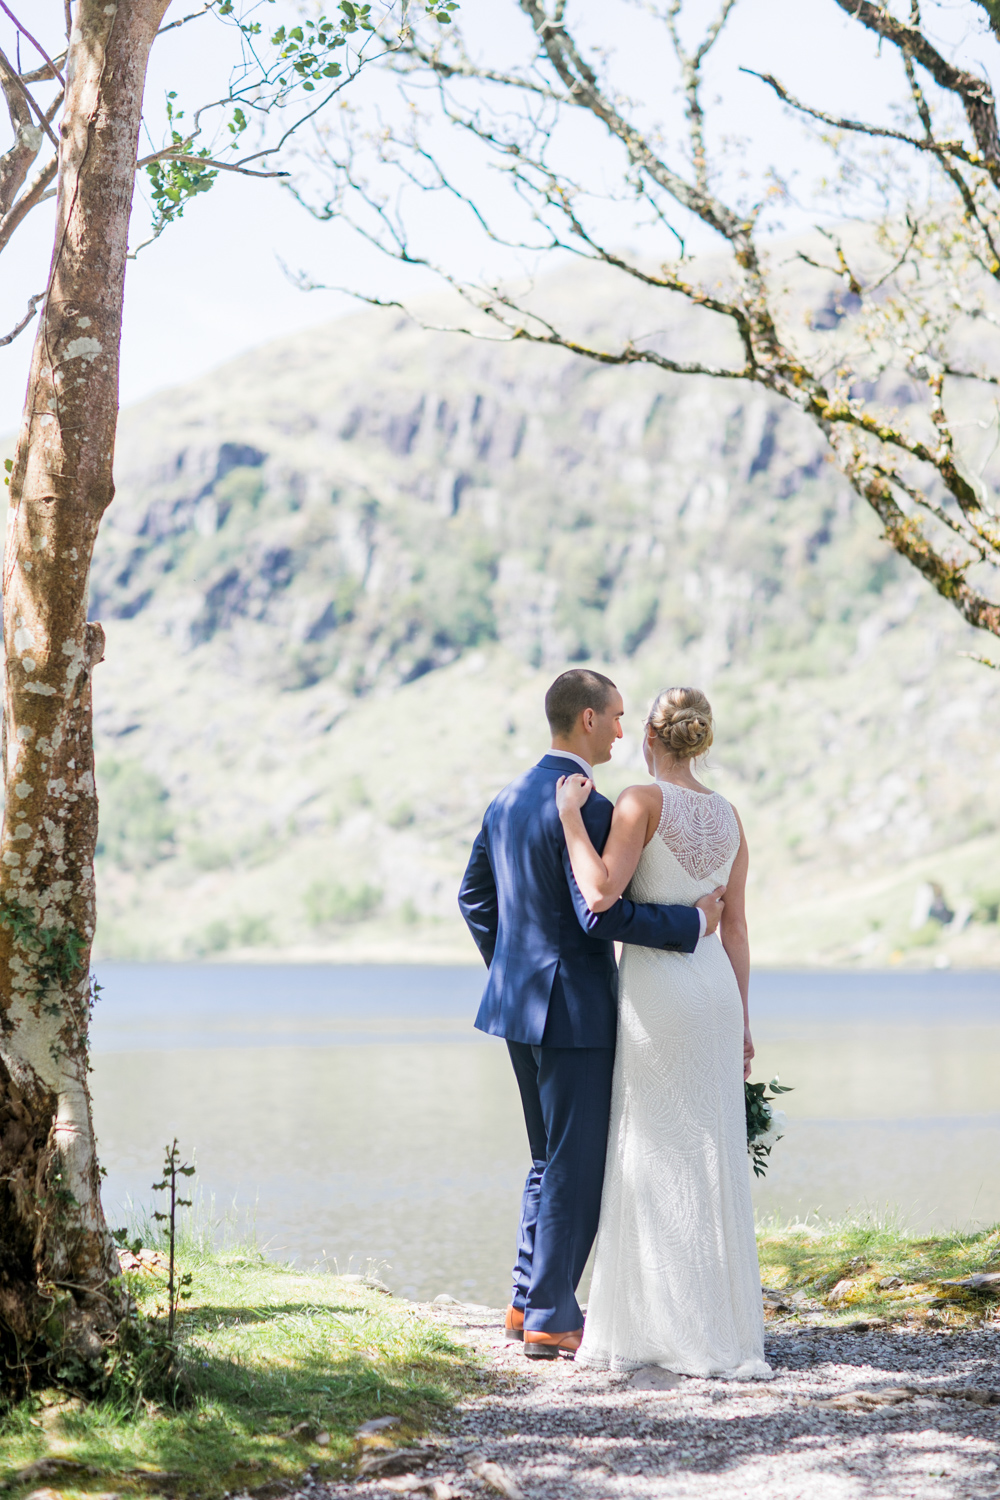 St Finbar's Oratory Cork Wedding | Rachel and Sean